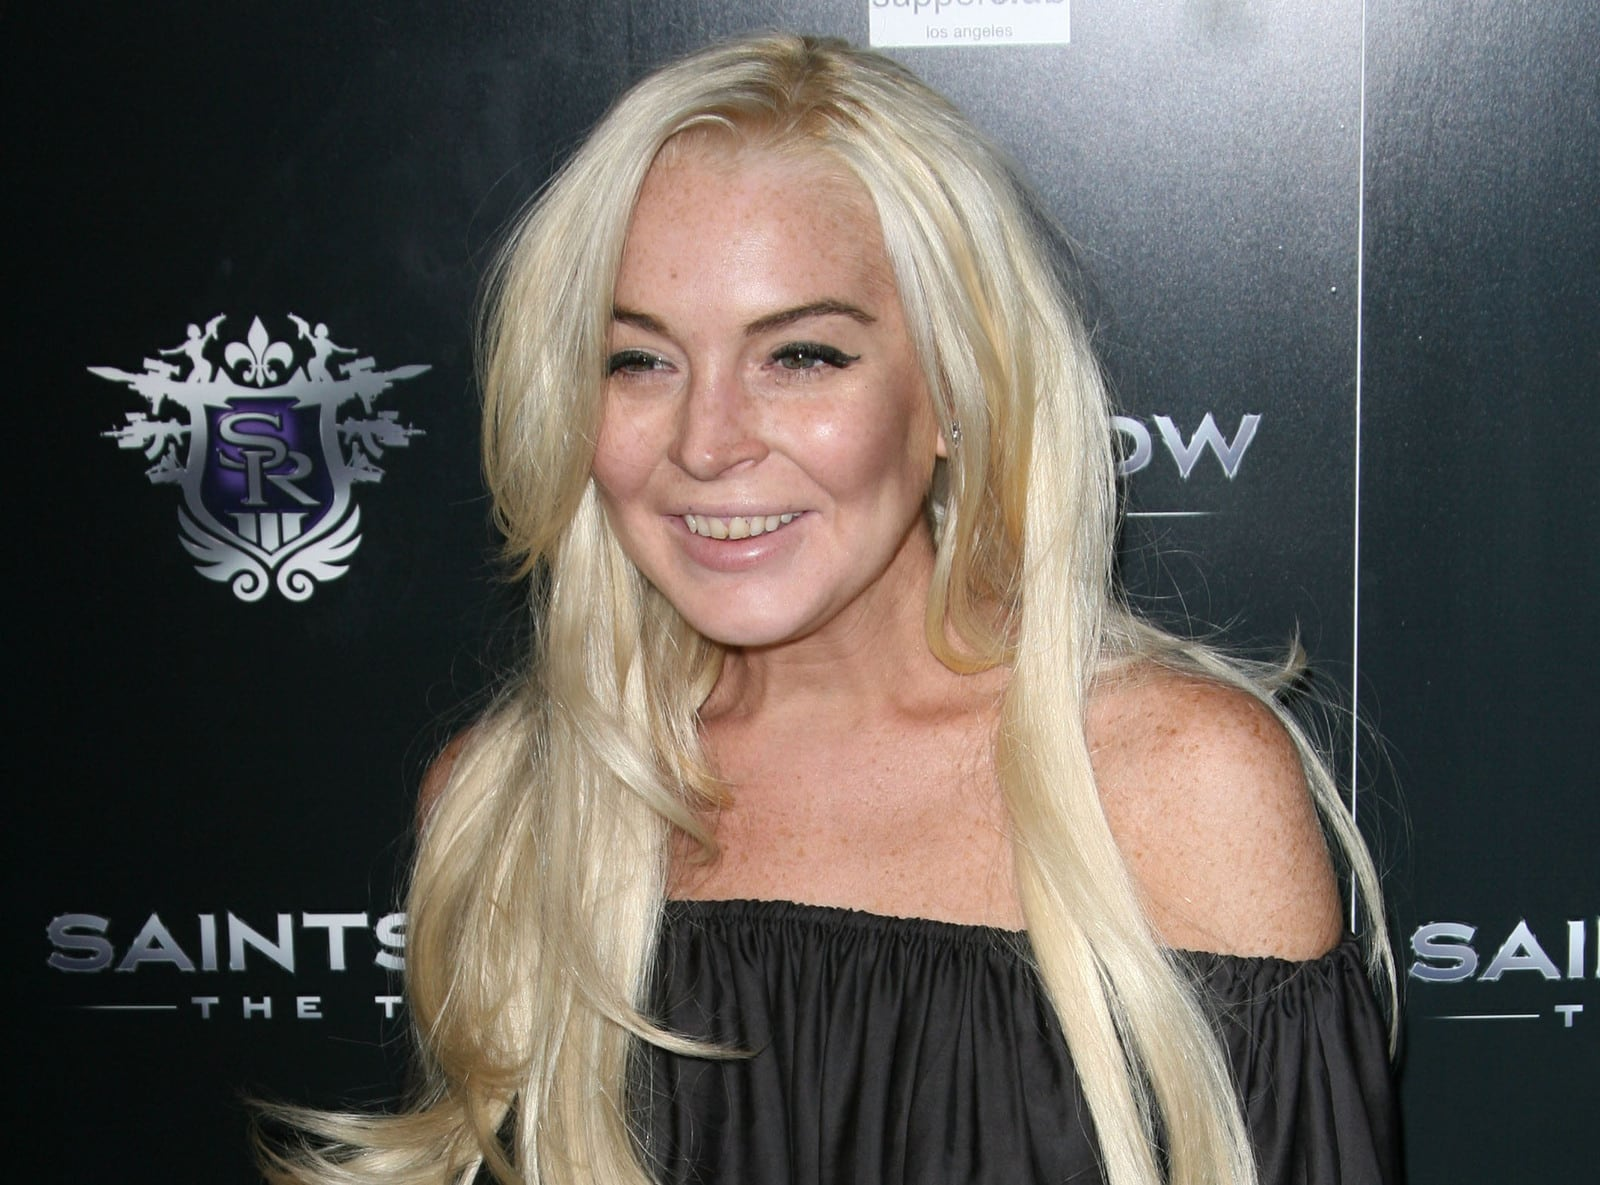 Discussion on this topic: Lily Nicksay, 20-lindsay-lohan/